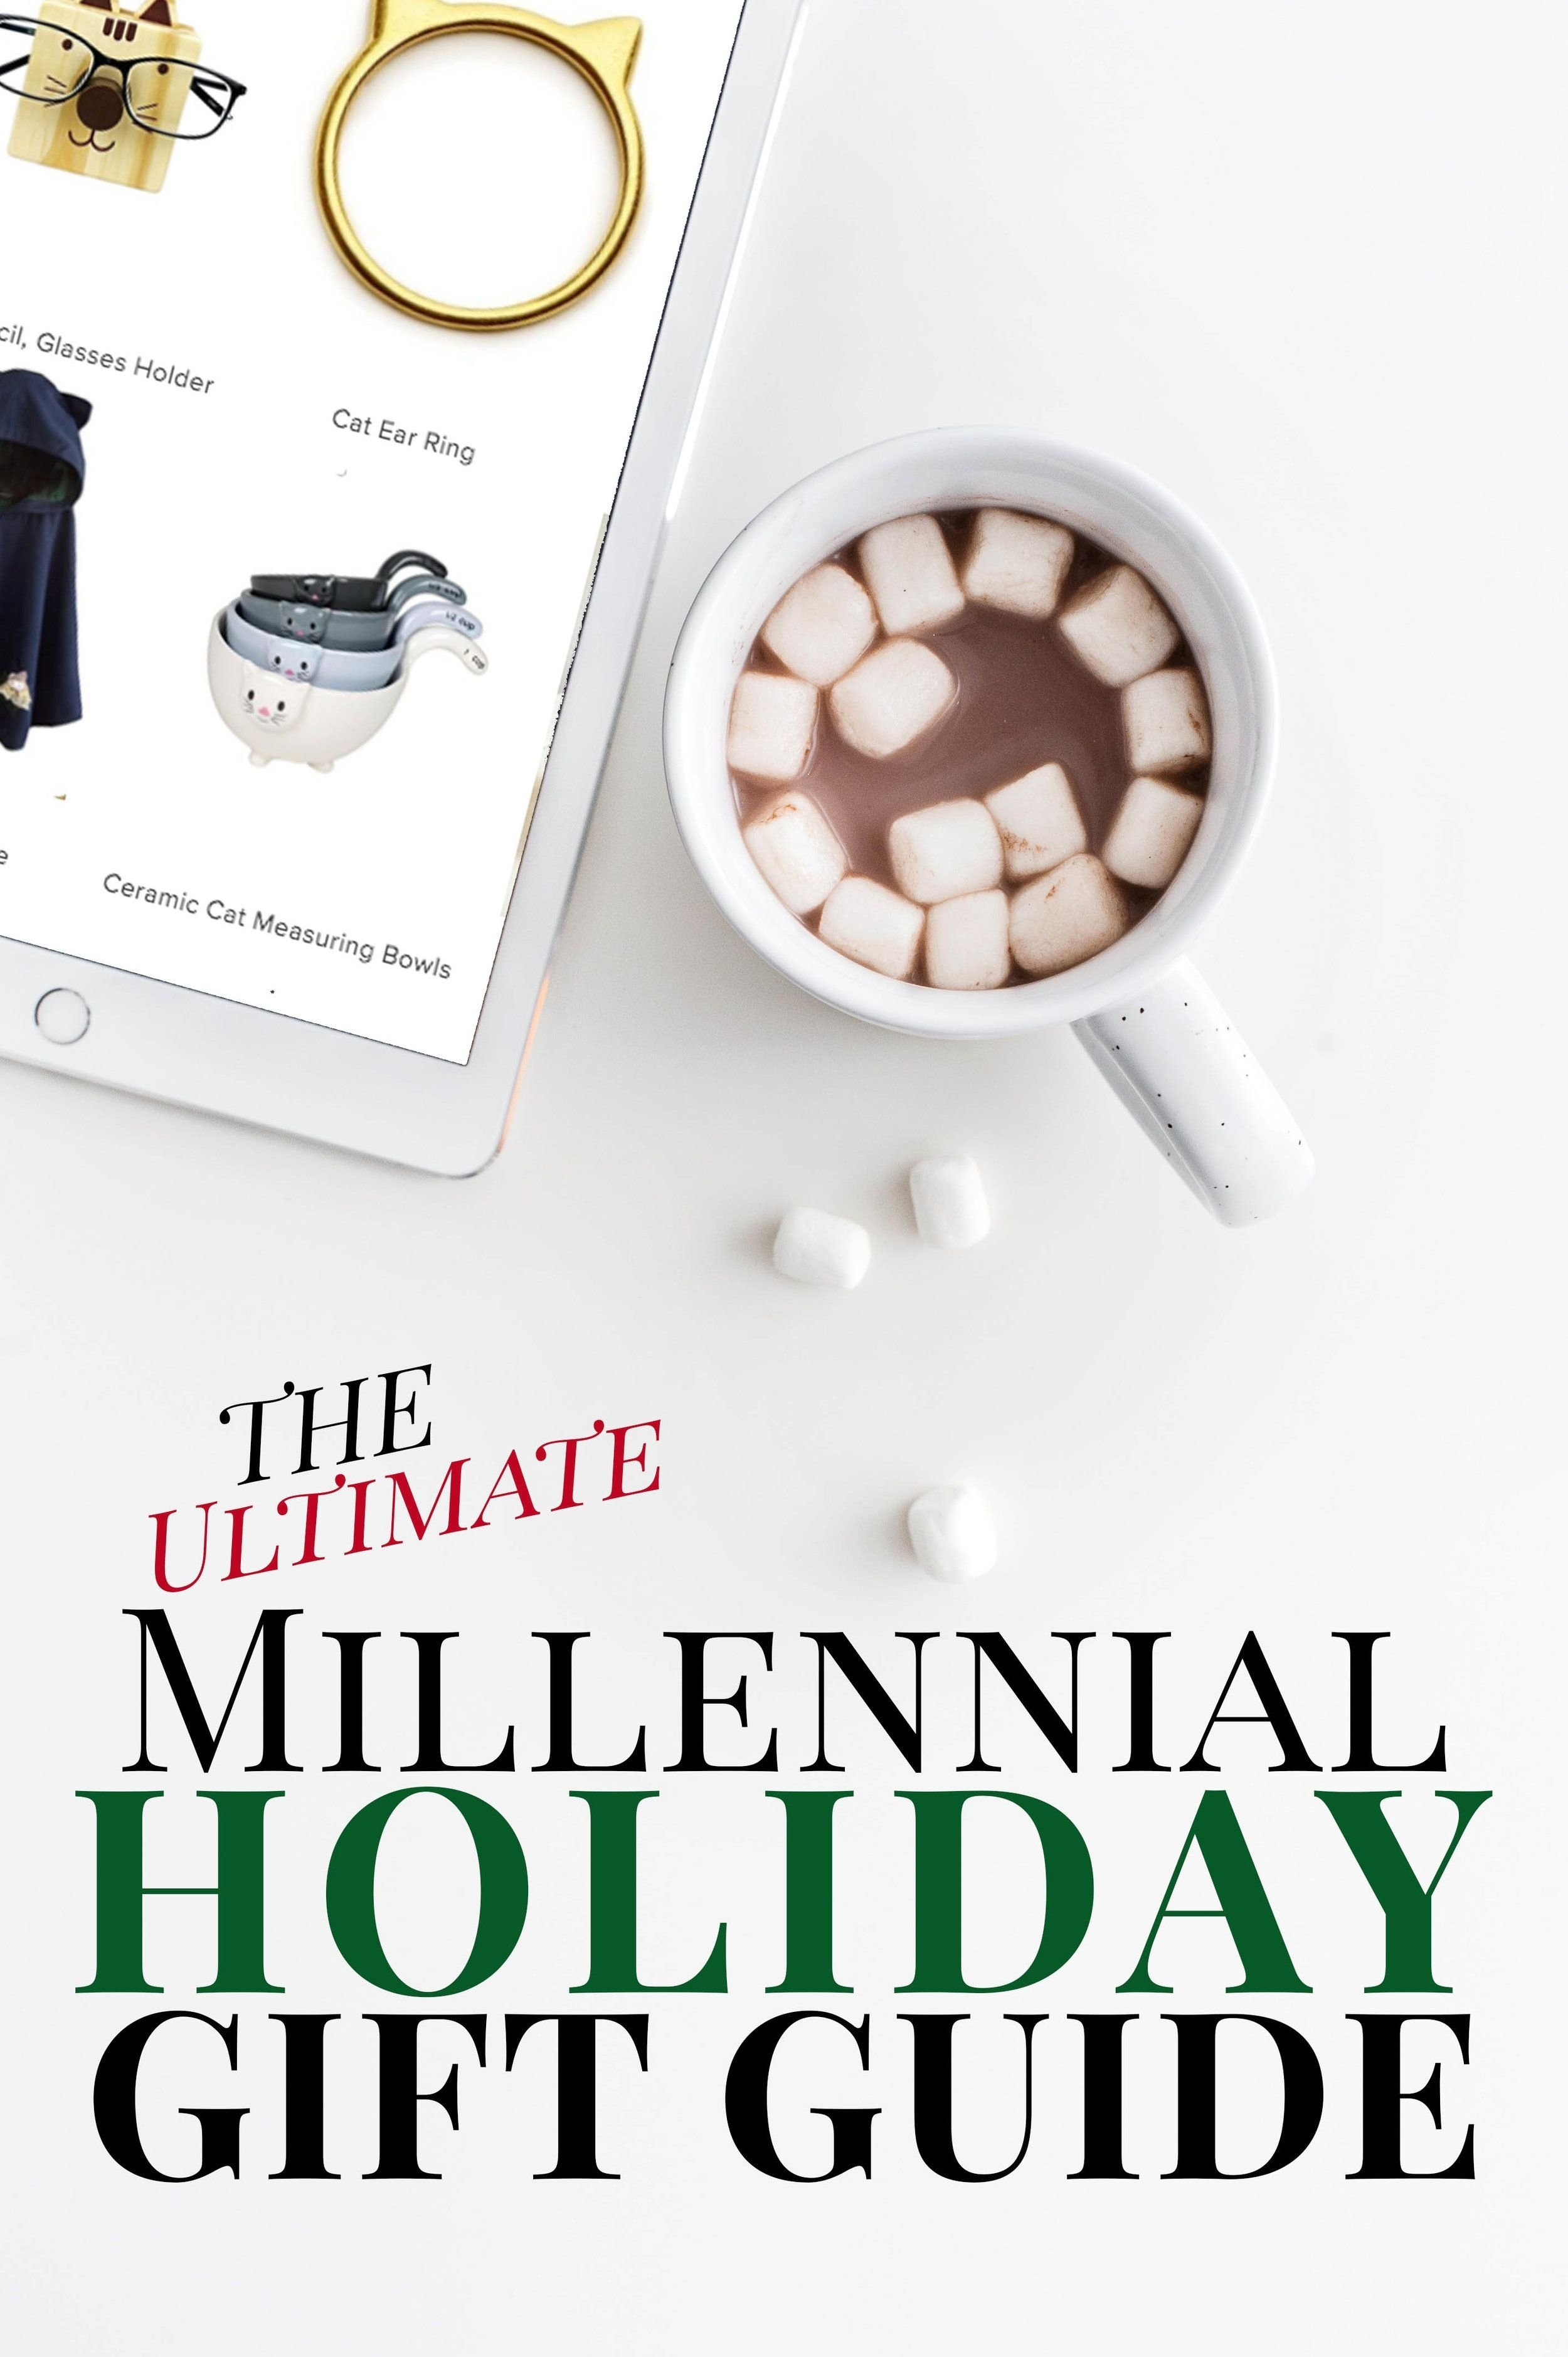 10 Lovable Gift Ideas For Family Members millennial holiday gift guide christmas gift ideas for millennials 2021